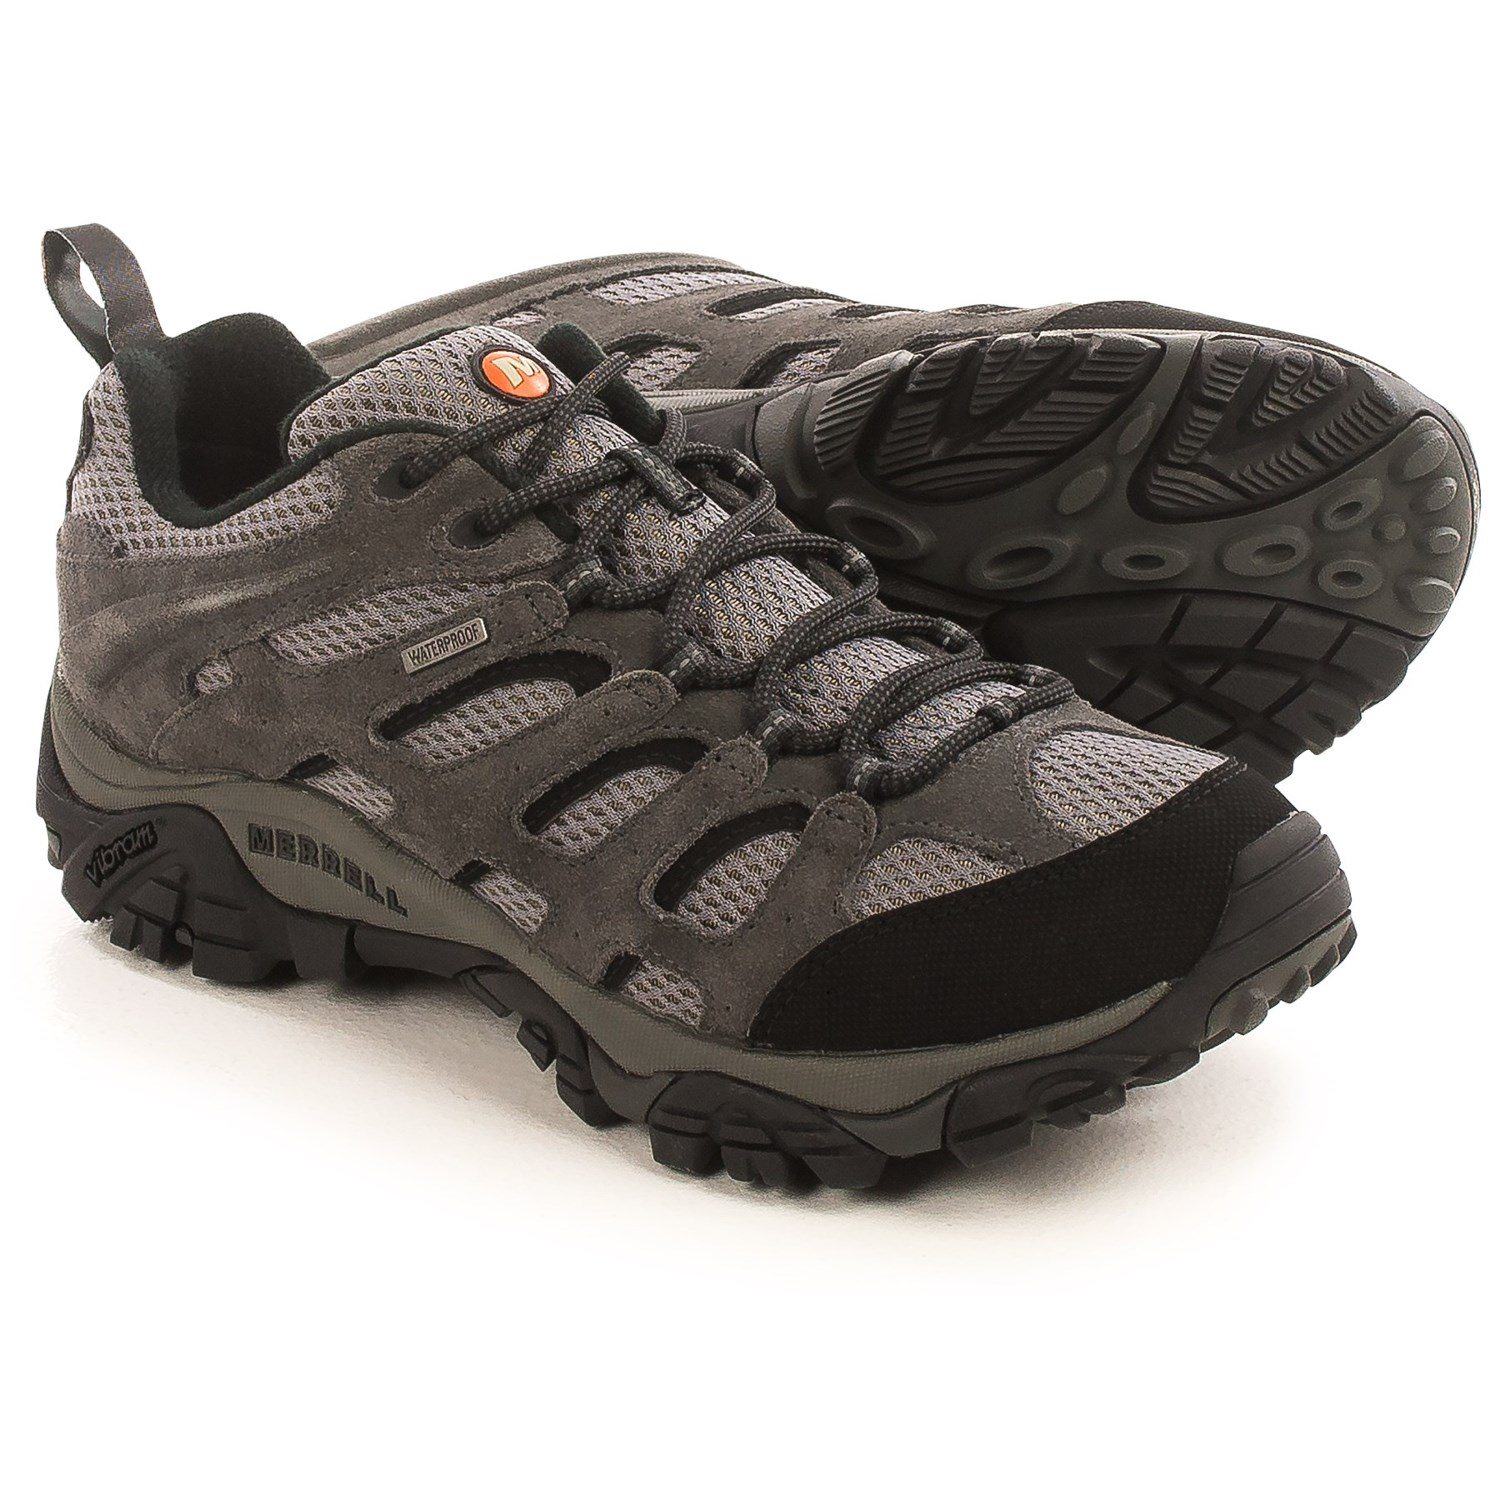 Cheap Hiking Shoes Melbourne